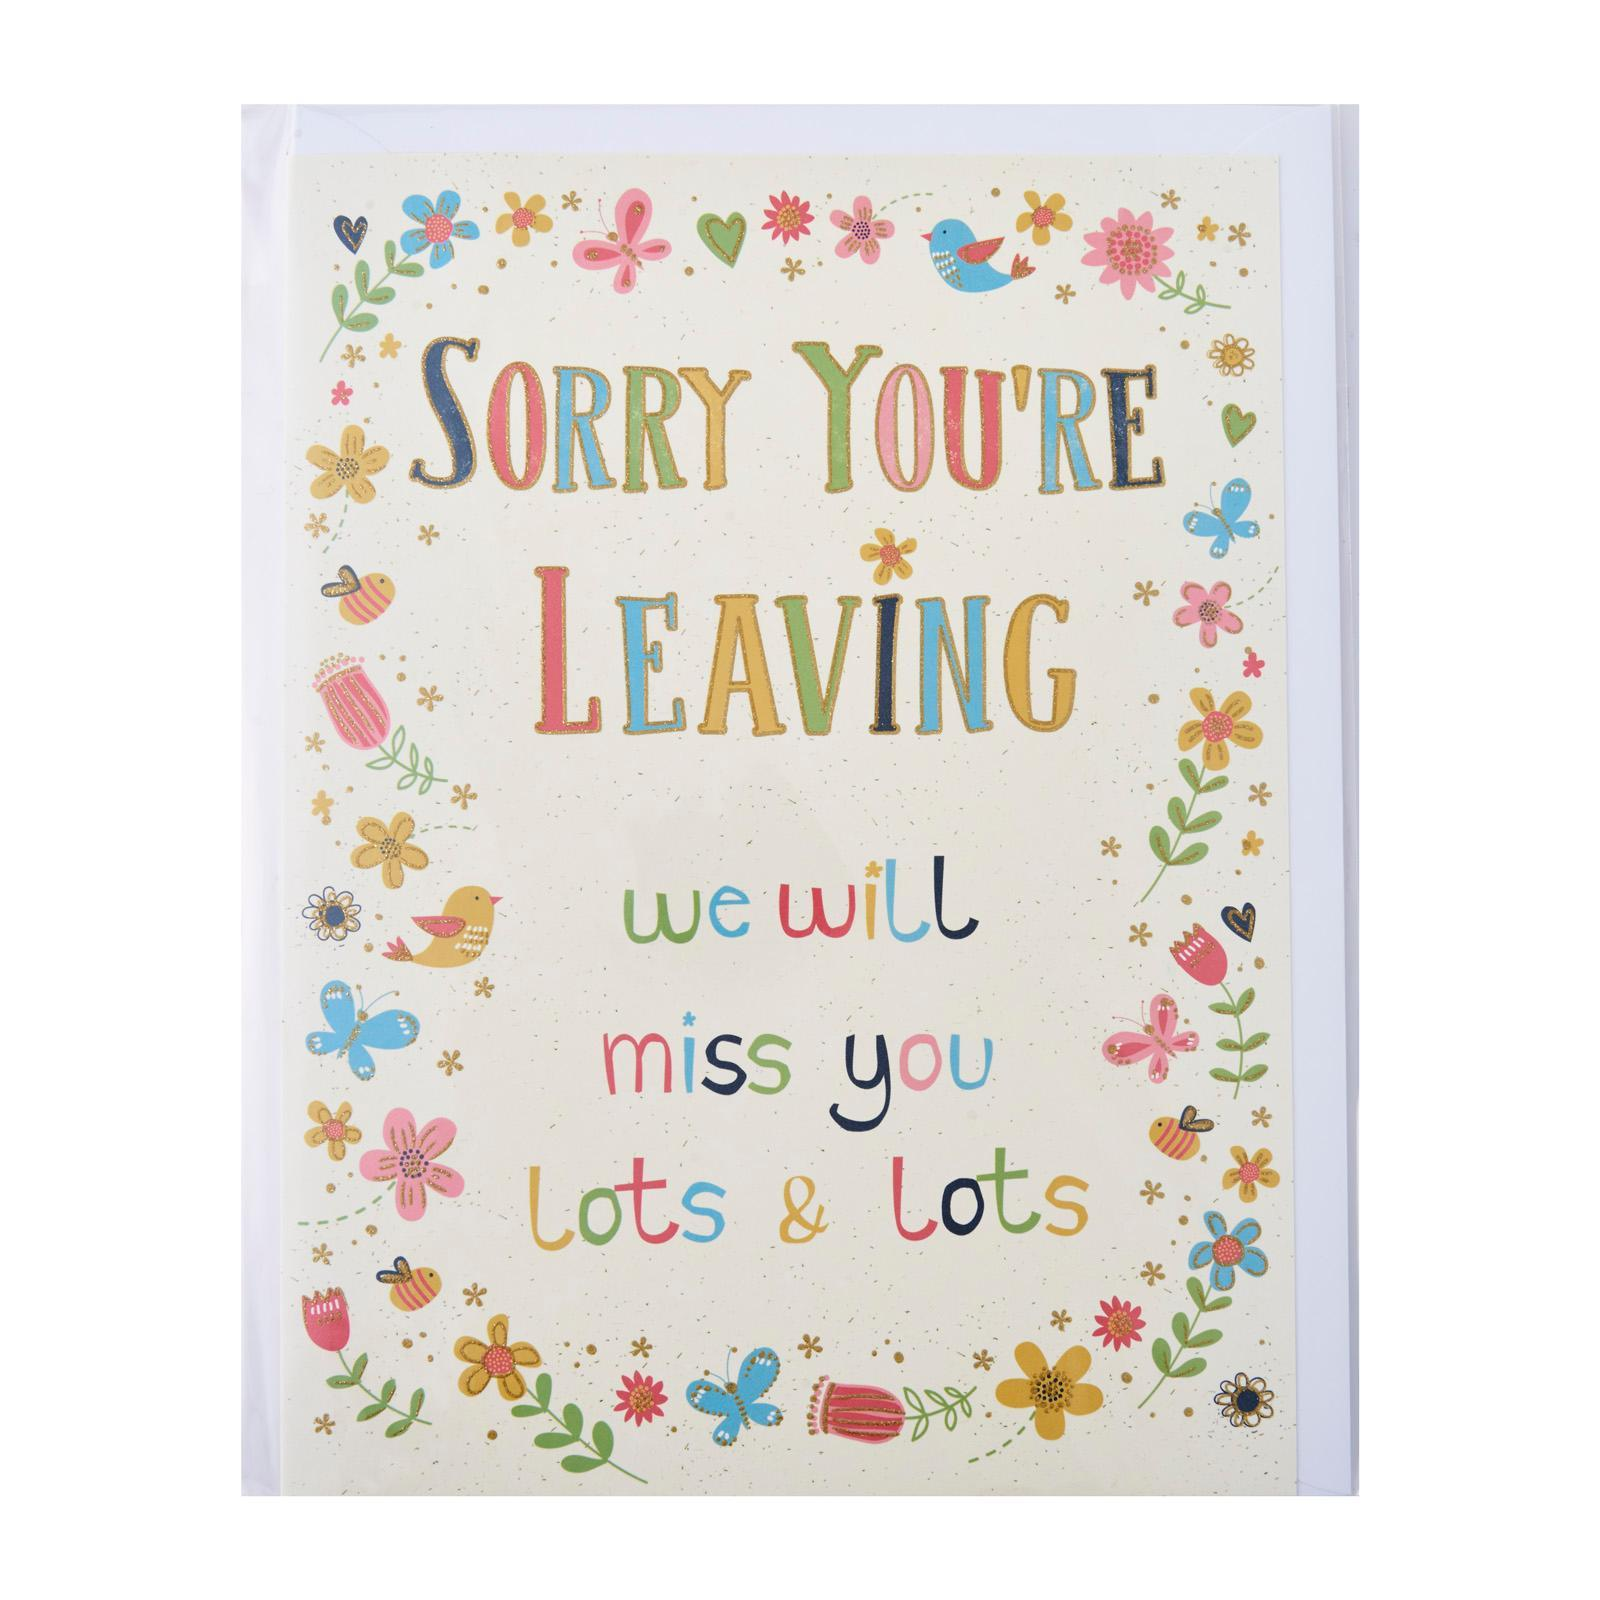 Sloane Graphics Farewell Card - Sorry You're Leaving We Will Miss You Lots And Lots